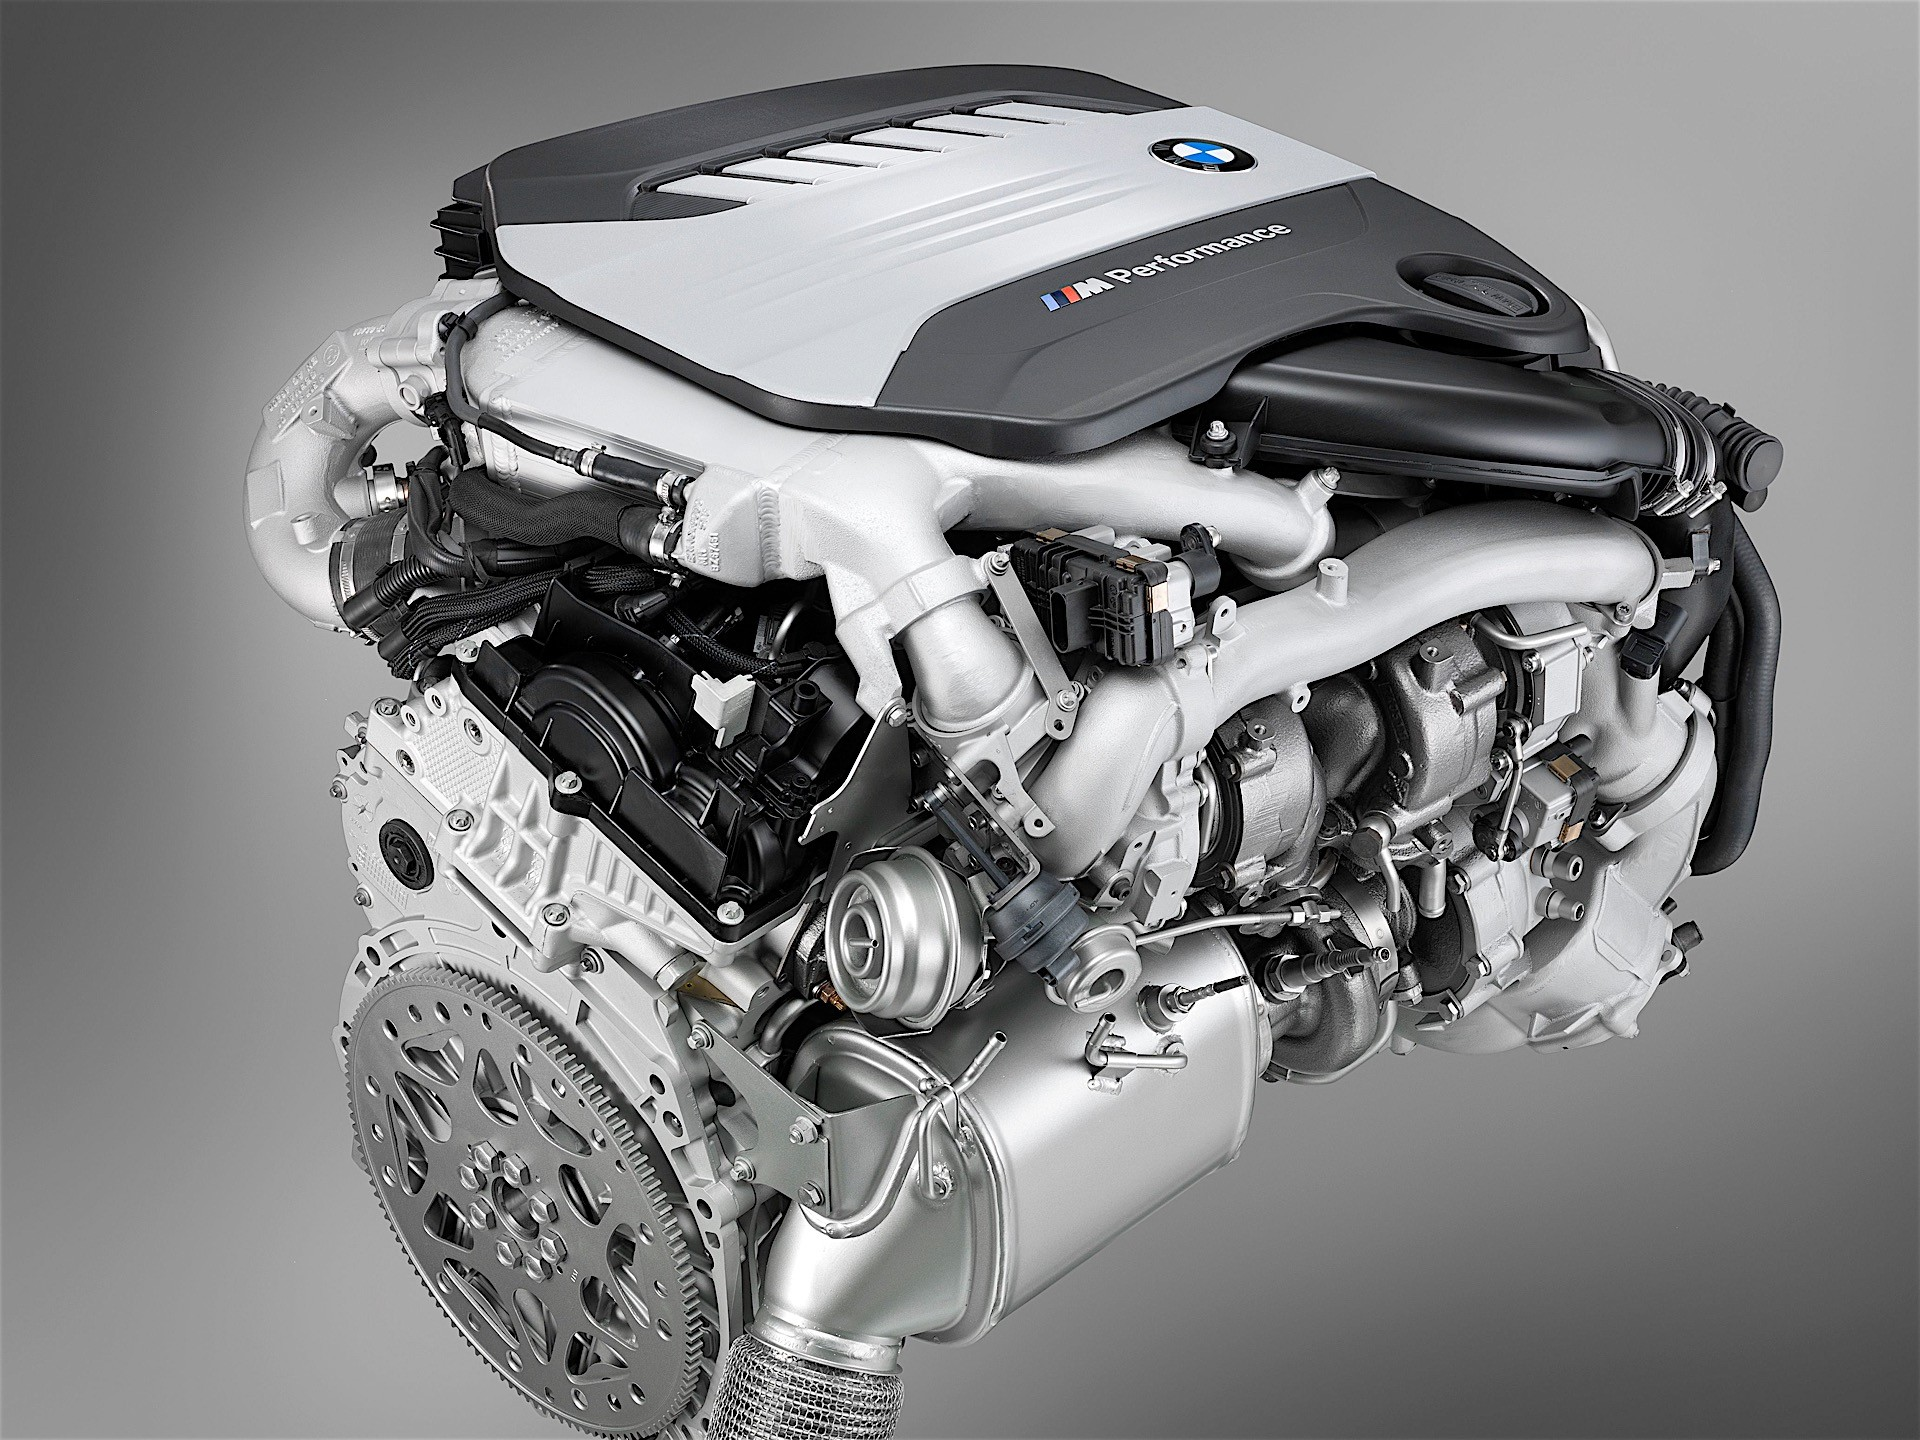 wikimedia benz wiki mercedes engine of jpg view diesel commons file a side engines s pump